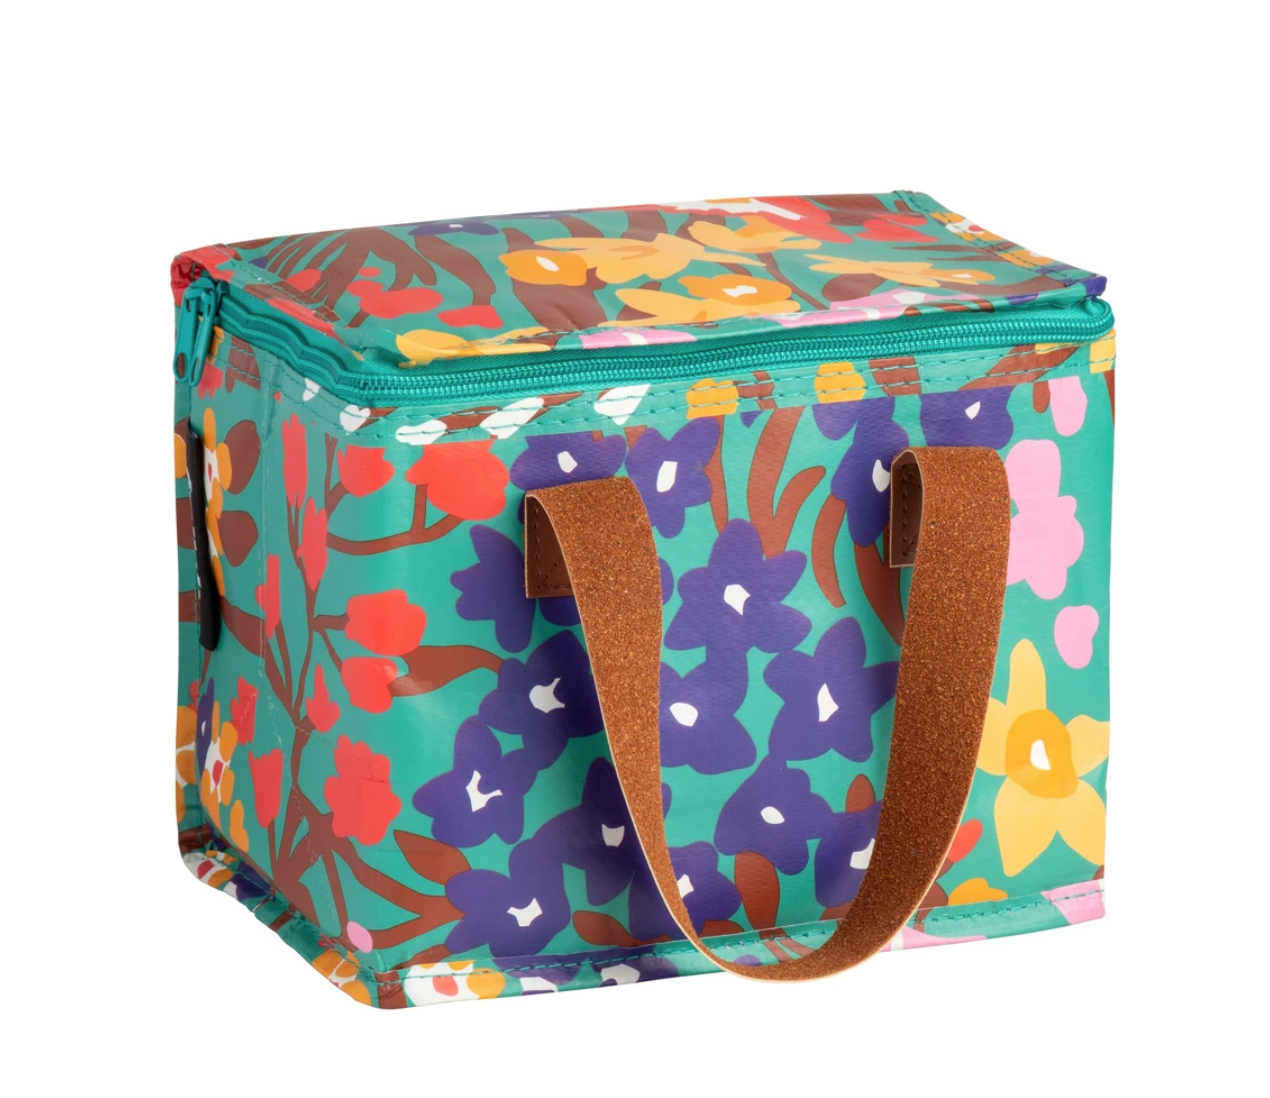 KOLLAB LUNCH BOX: SPRING GARDEN